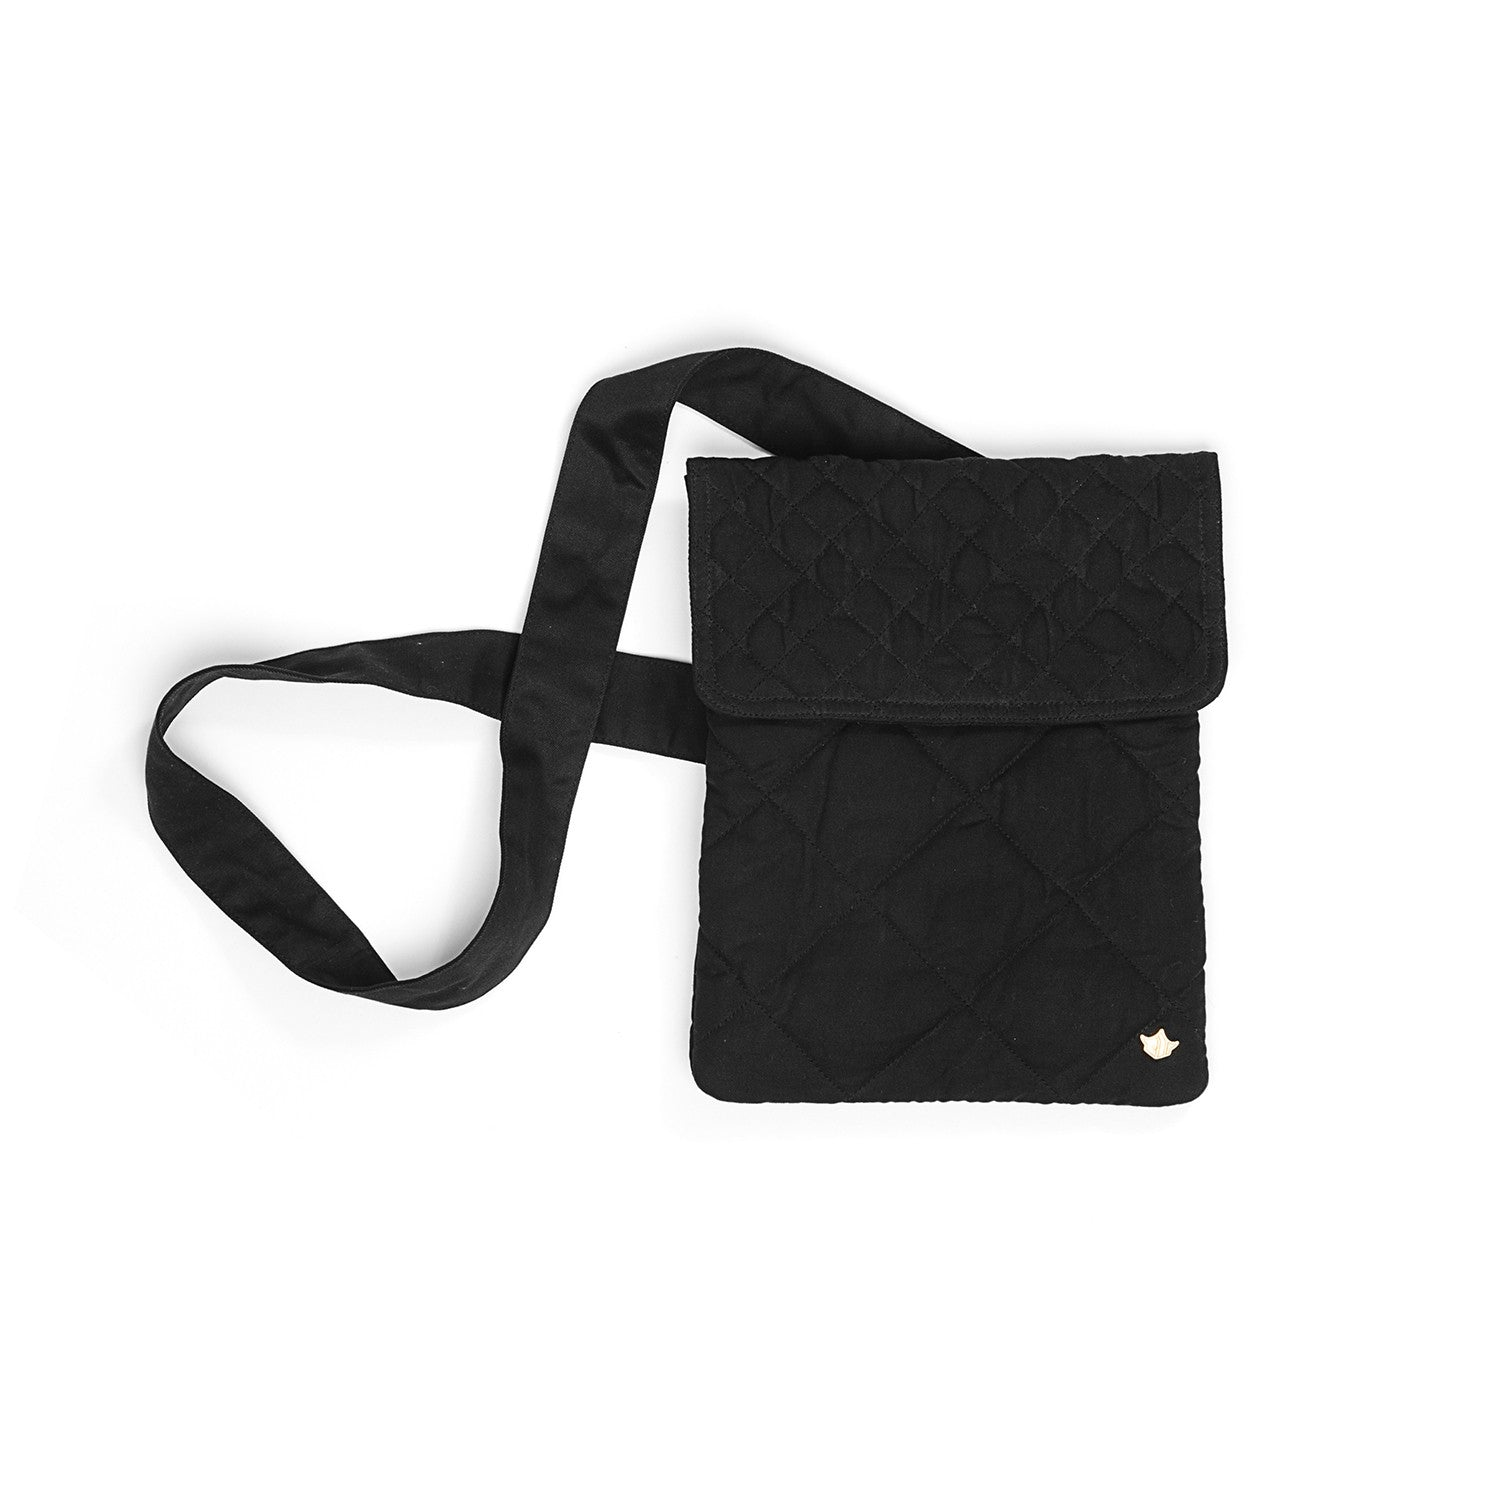 Maharishi Quilted Ipad Bag Black - Concrete